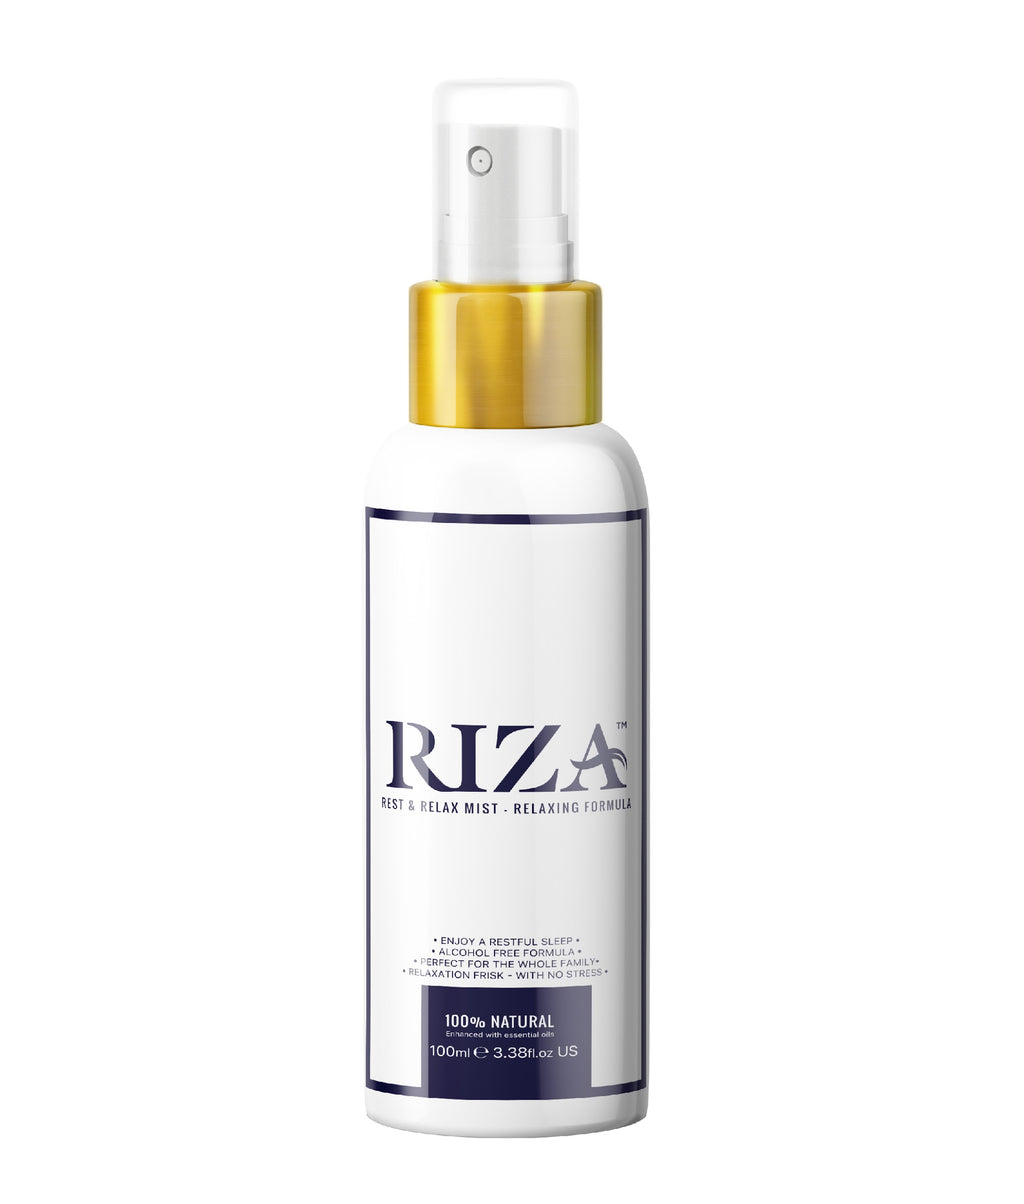 Rest and Relax Mist - Relaxing Formula